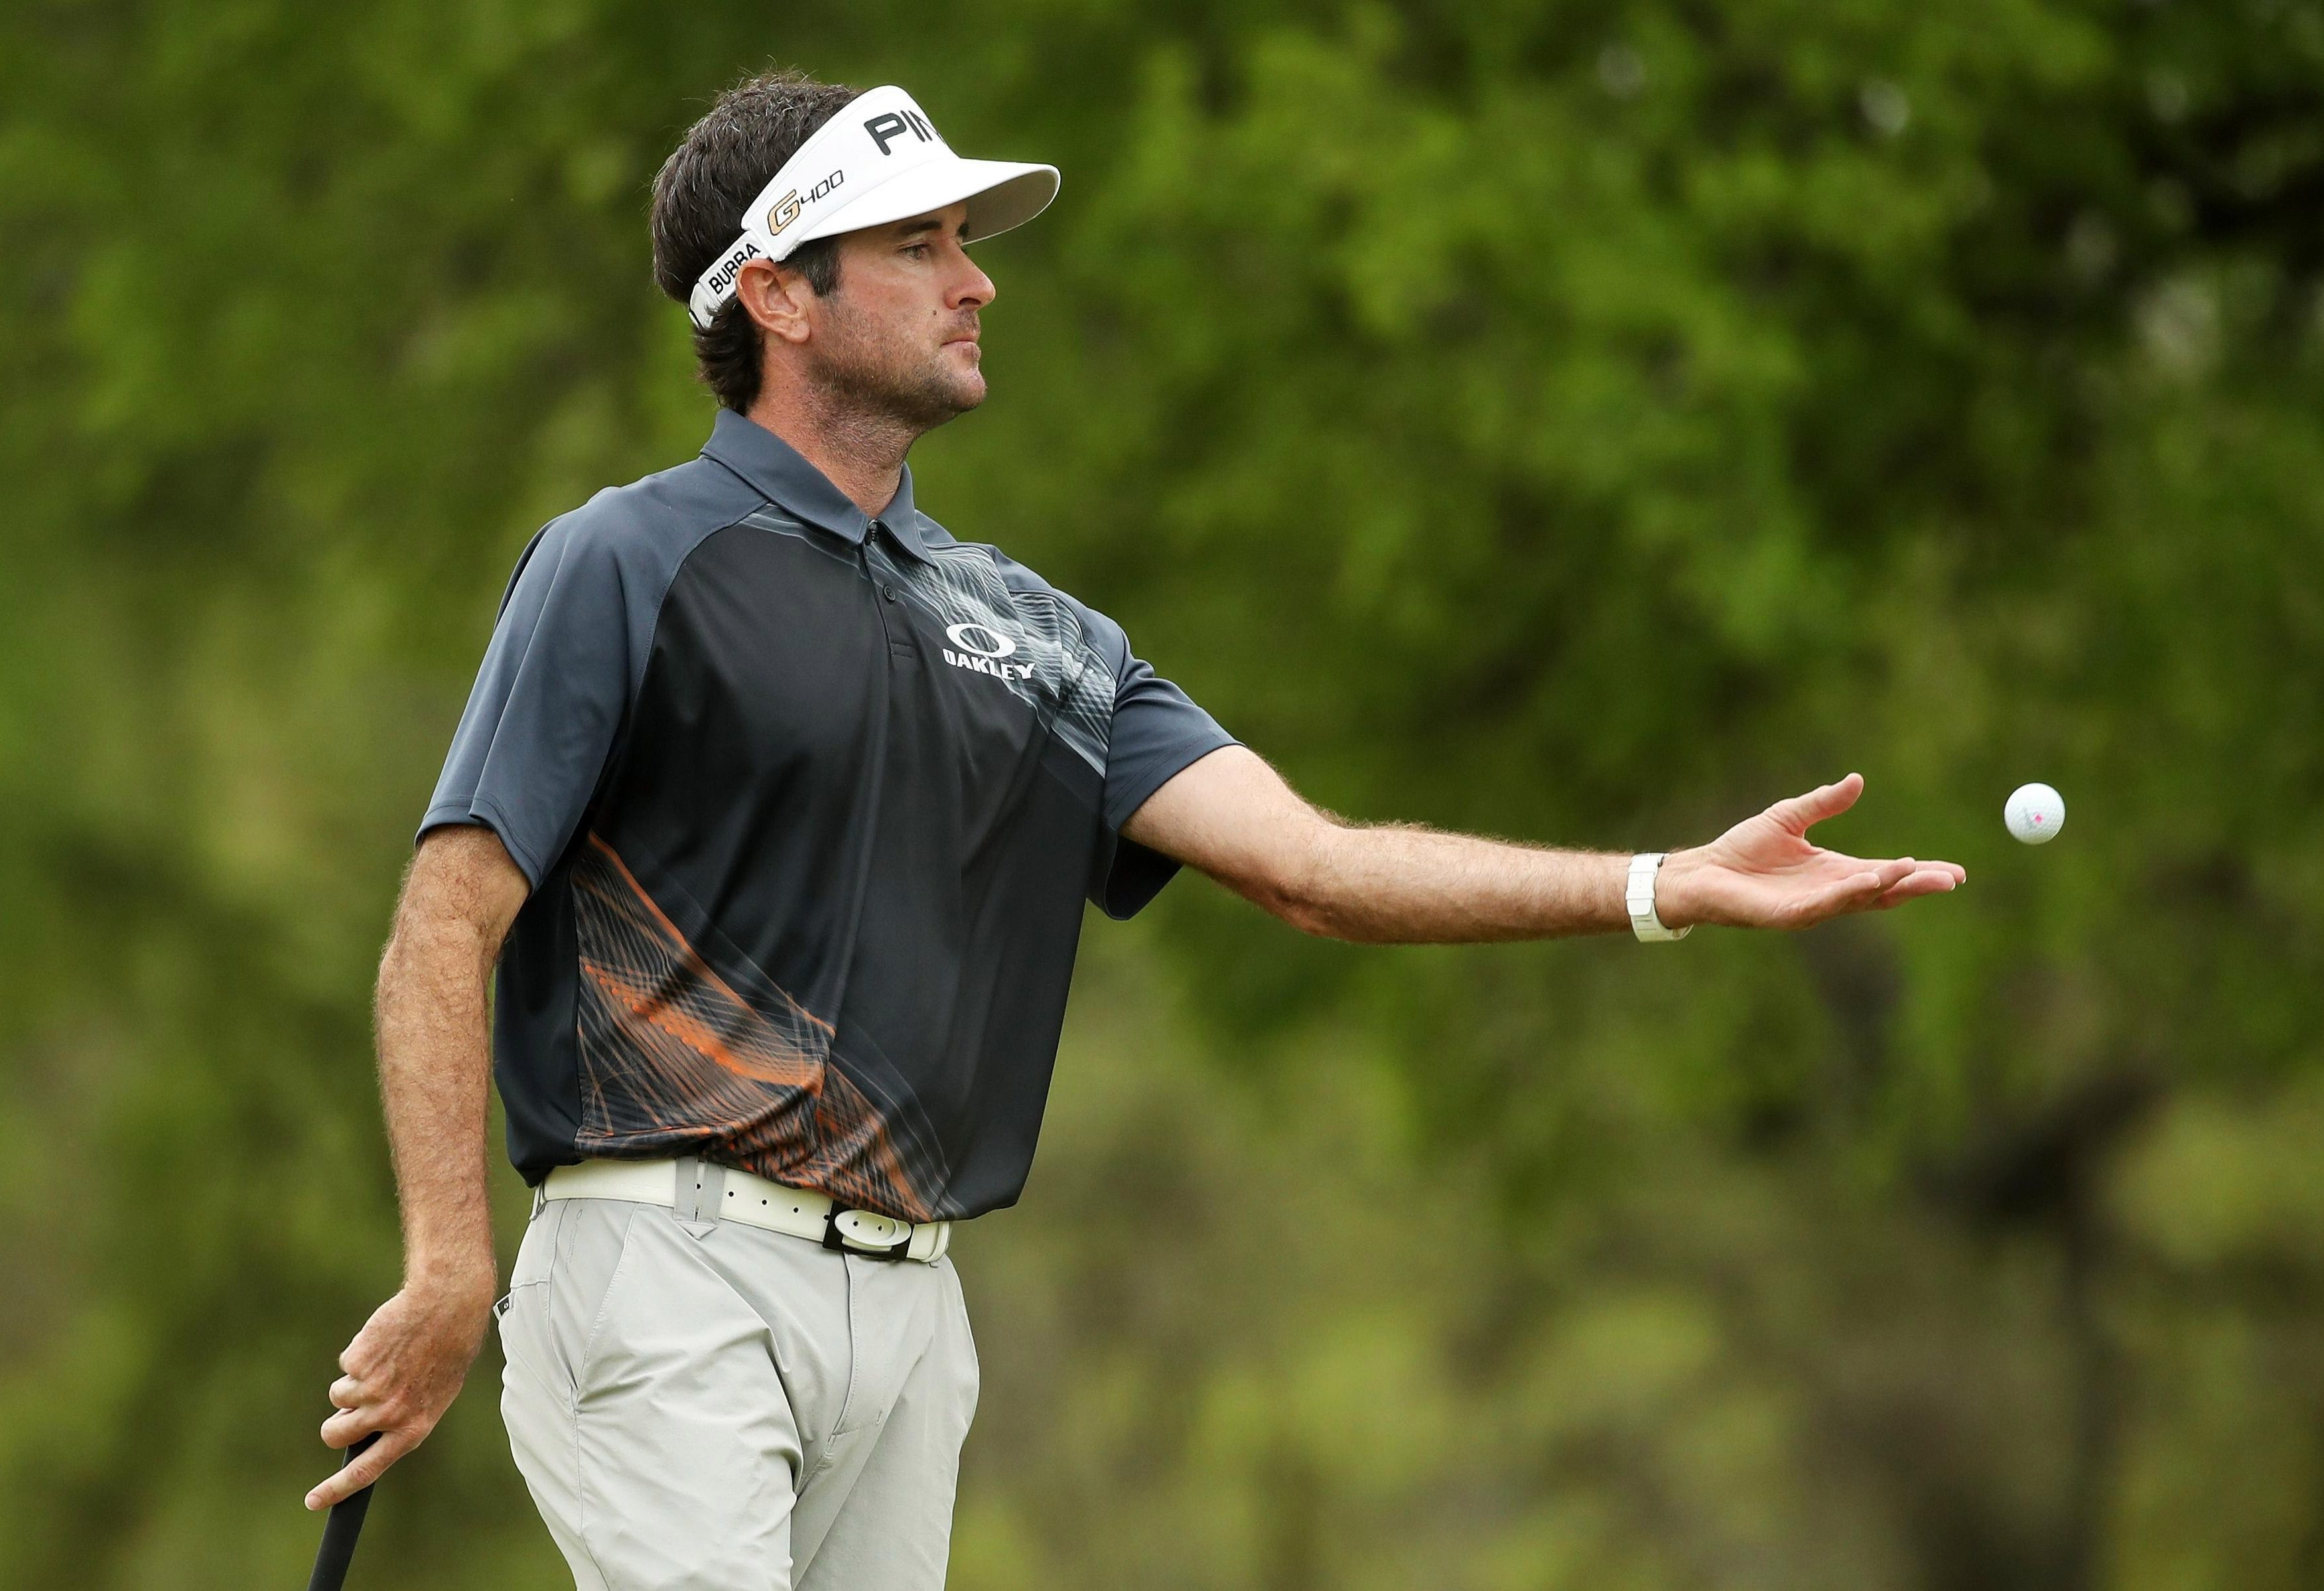 The American steamrollered past everyone to win the Dell World Match Play title